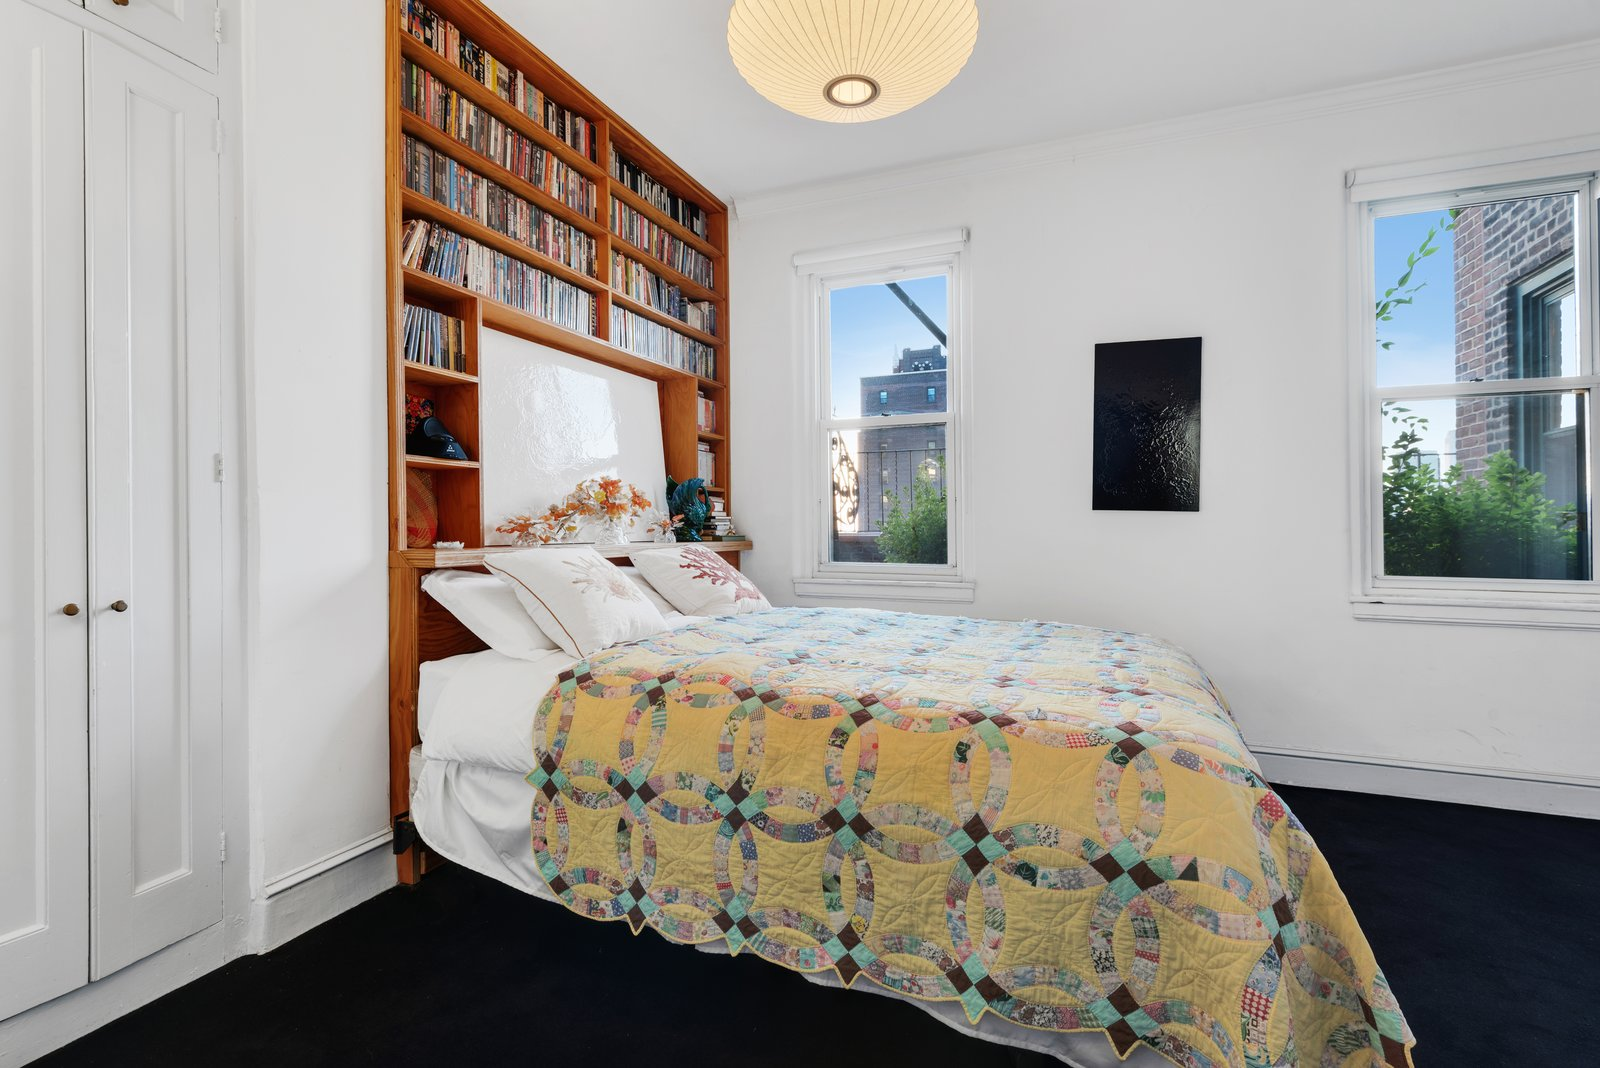 Bedroom, Pendant Lighting, Bed, Shelves, Bookcase, and Carpet Floor Built-in shelving in another bedroom holds more than enough bedtime reading.  Photo 10 of 12 in Björk Puts Her Brooklyn Heights Penthouse on the Market For $9M